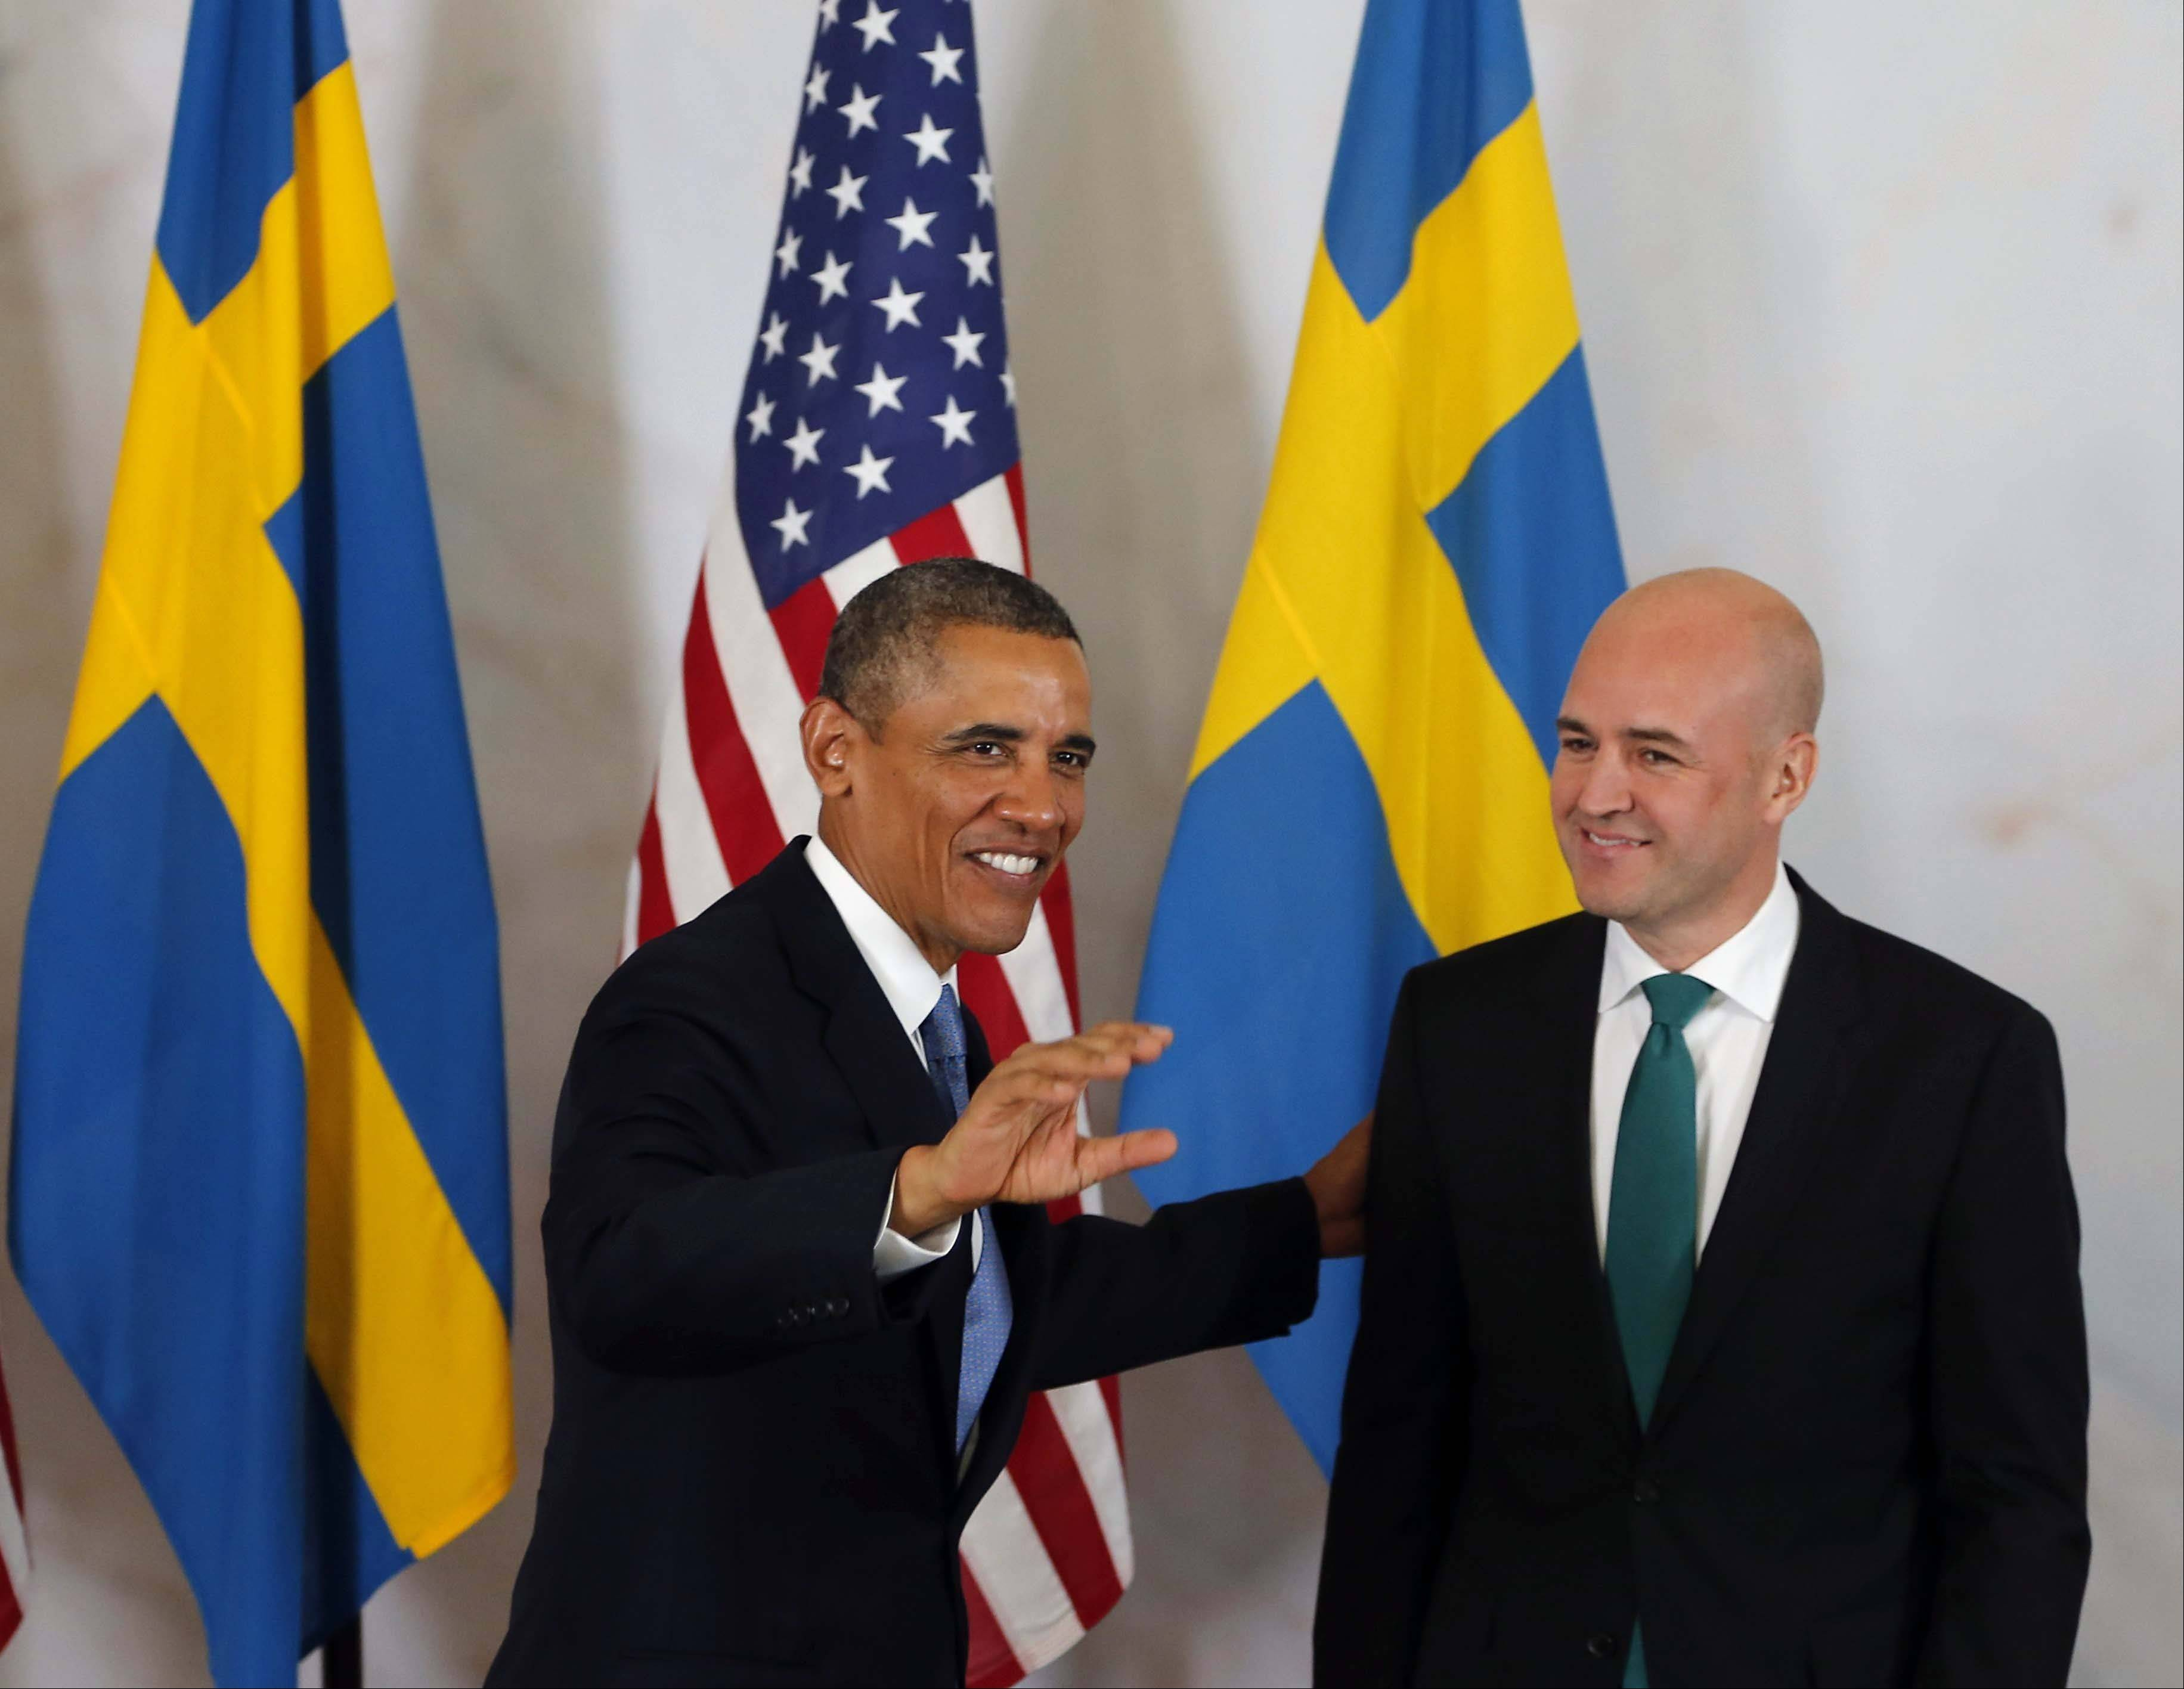 President Barack Obama, left, meets Wednesday with Sweden's Prime Minister Fredrik Reinfeldt at Rosenbad, the seat of the Swedish government in Stockholm, Sweden. President Barack Obama is opening a three-day overseas trip with a stop in Stockholm, ahead of the G-20 Summit in St. Petersburg, Russia.